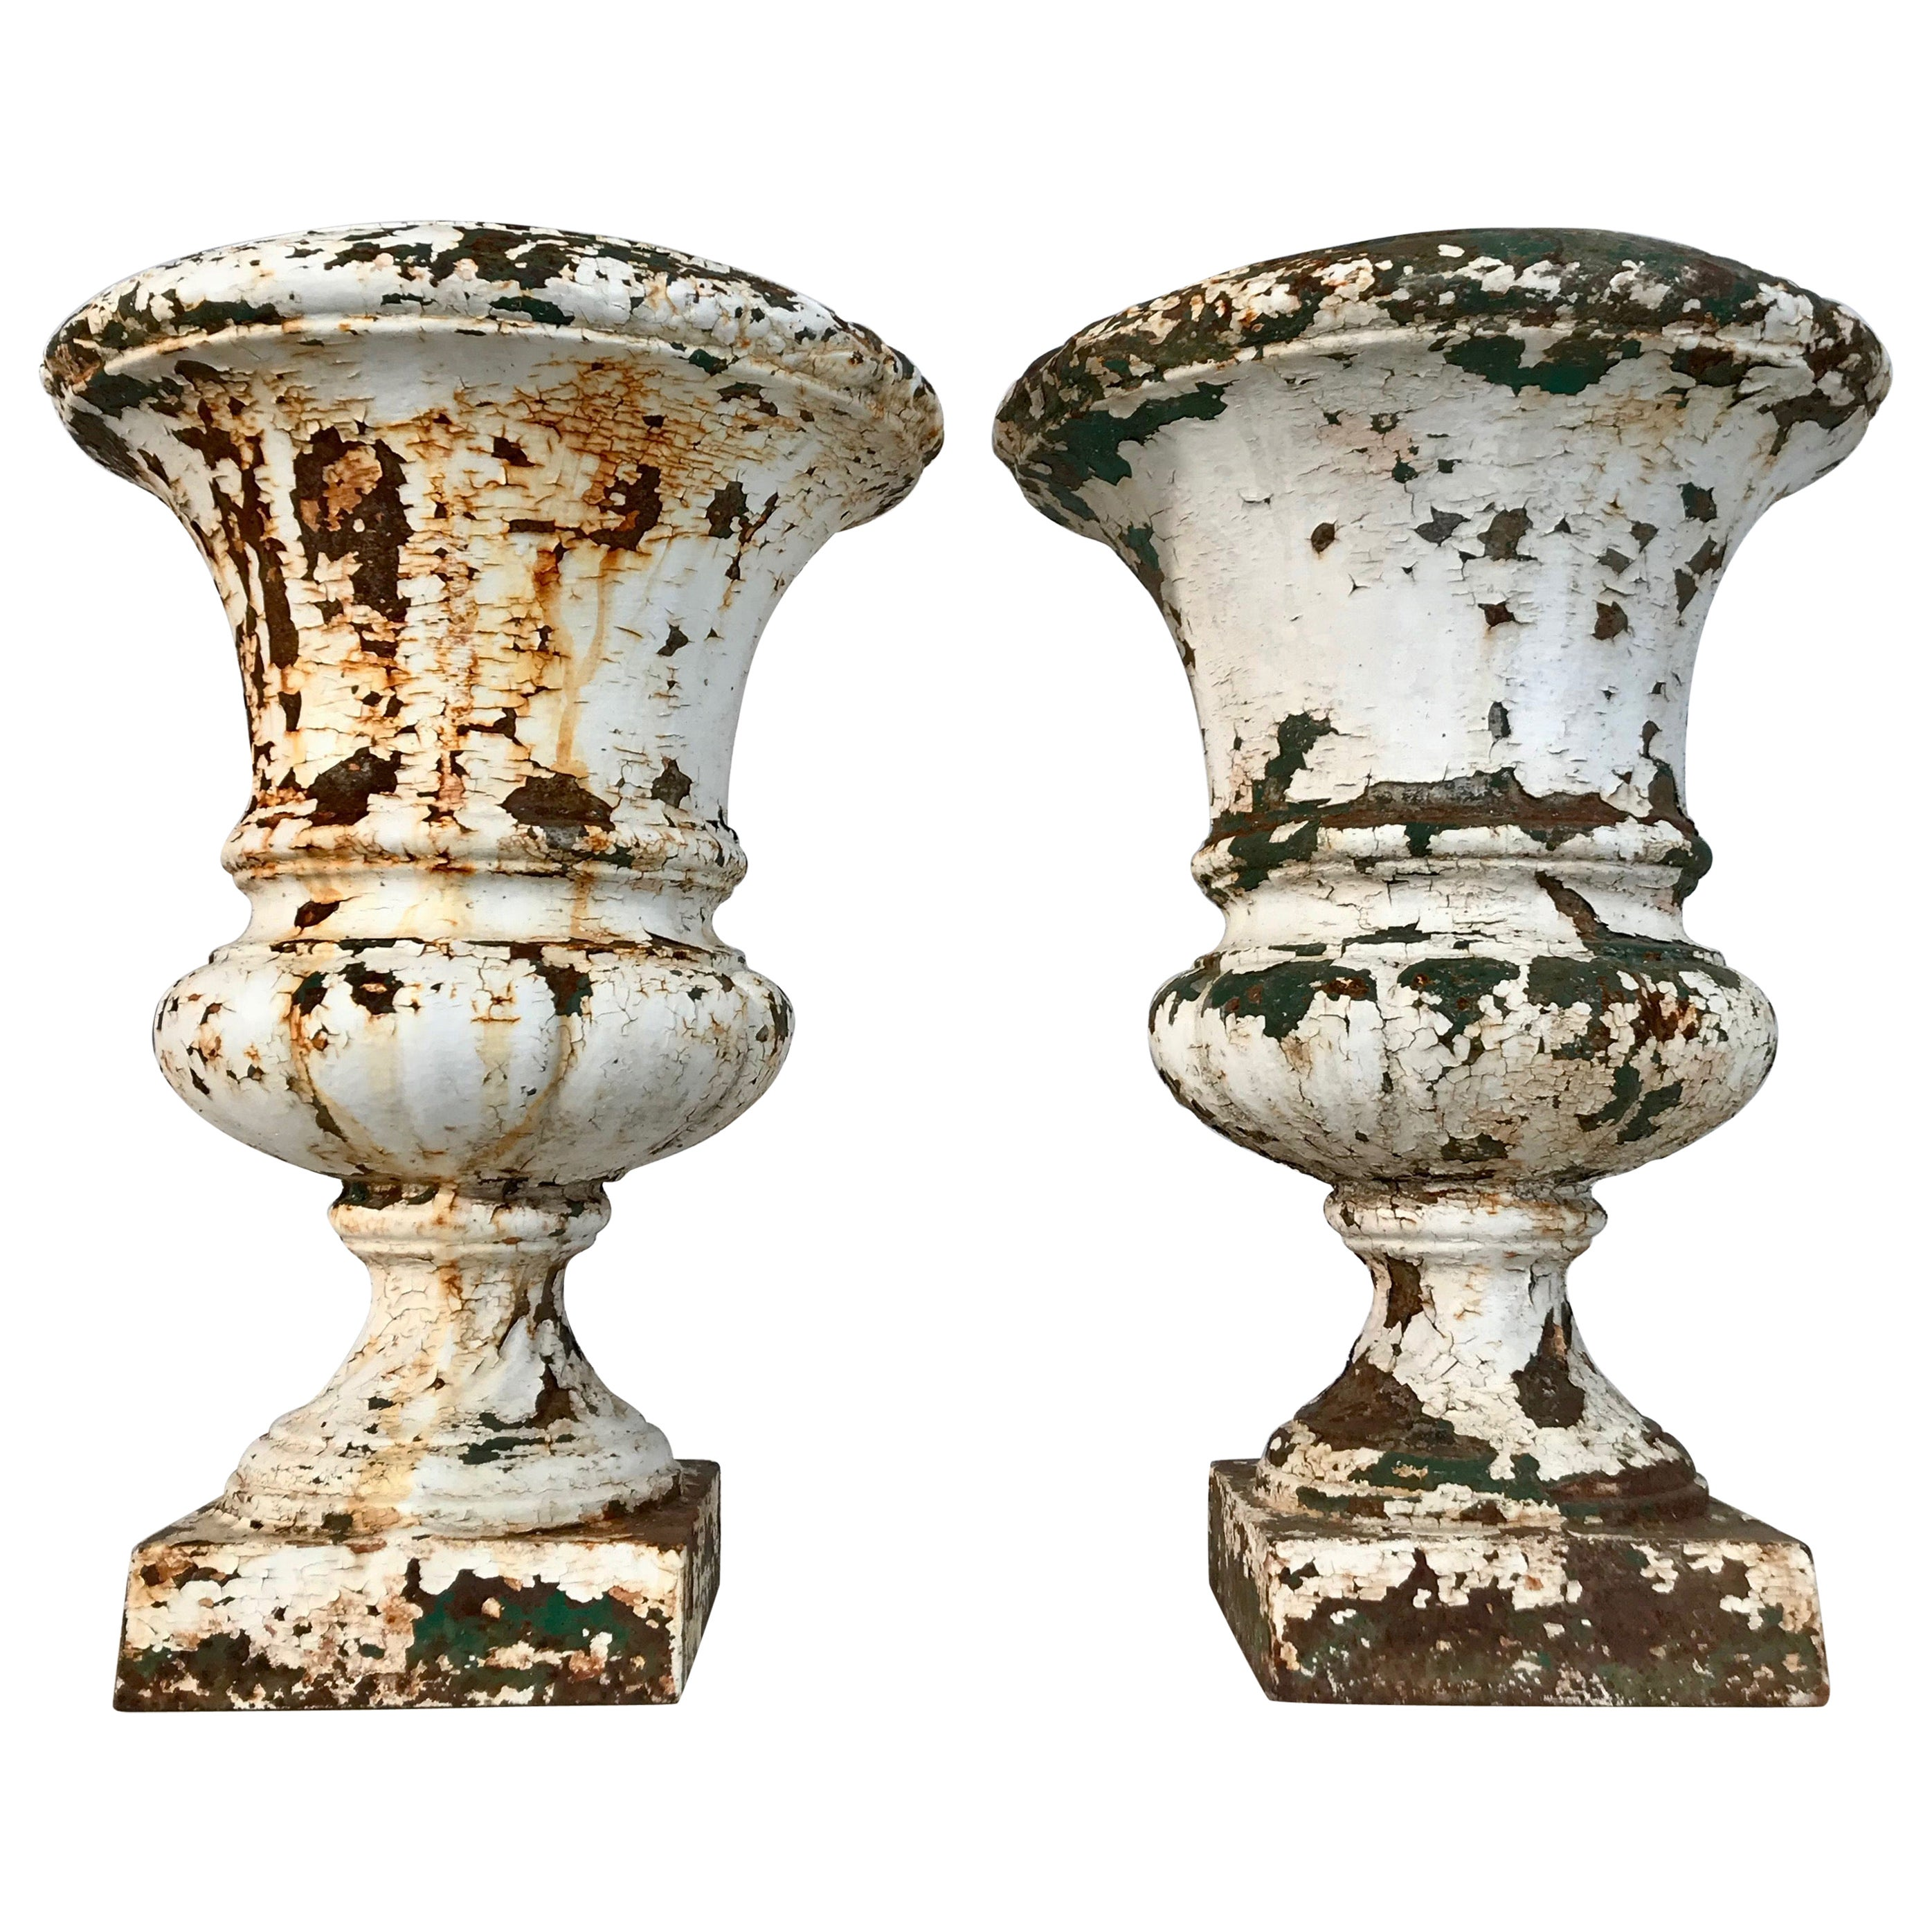 Pair of French 19th Century Cast Iron Medici Urns in Old Painted Surface